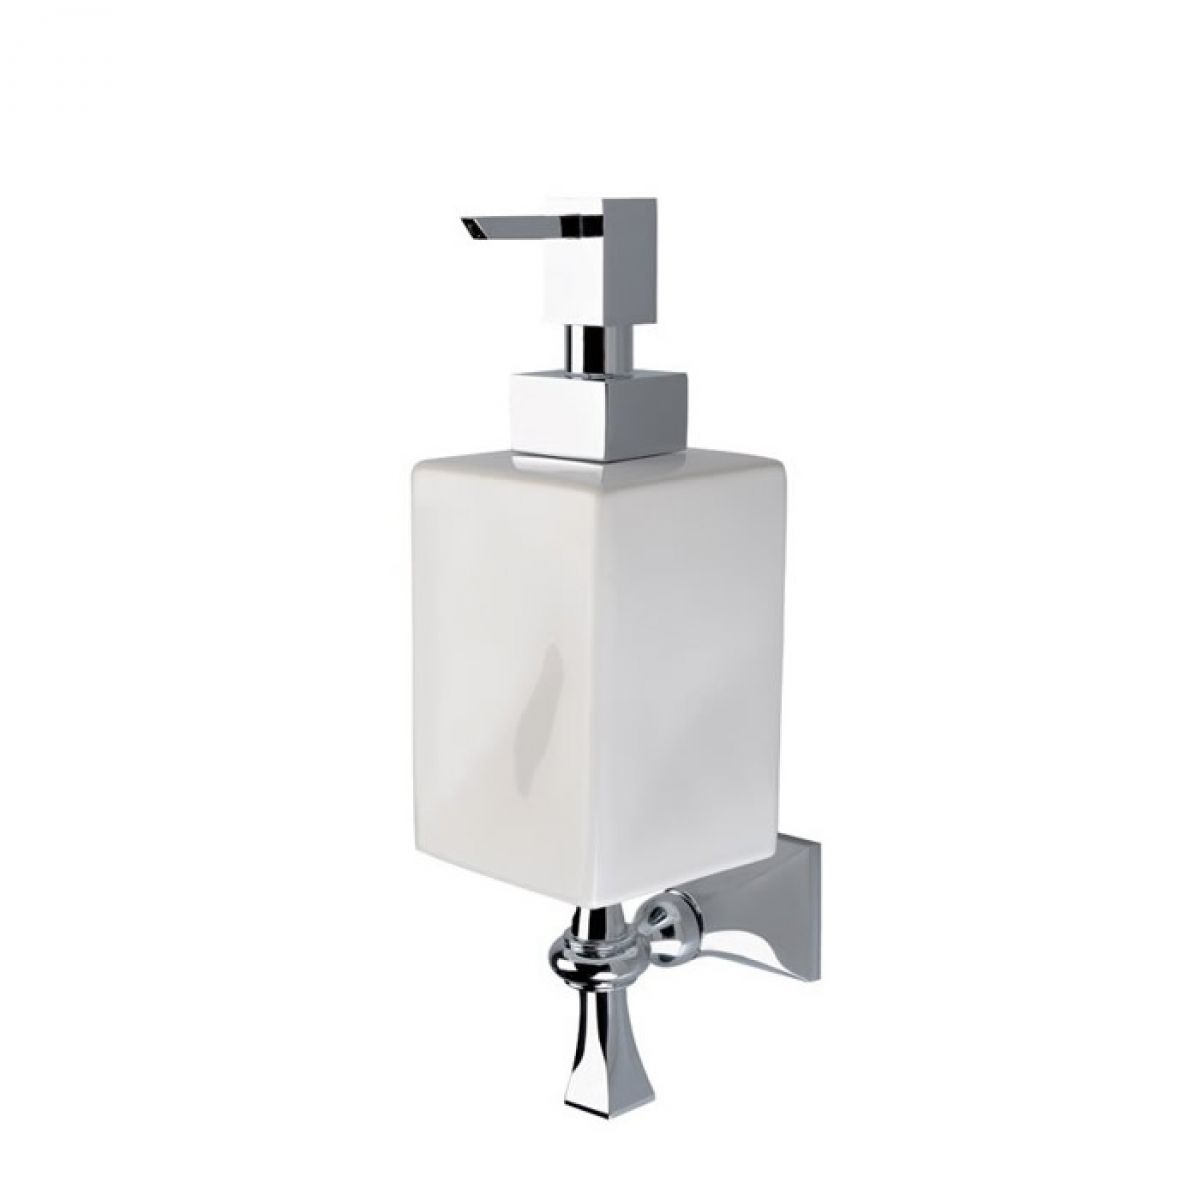 imperial highgate wall mounted soap dispenser - Wall Mounted Soap Dispenser